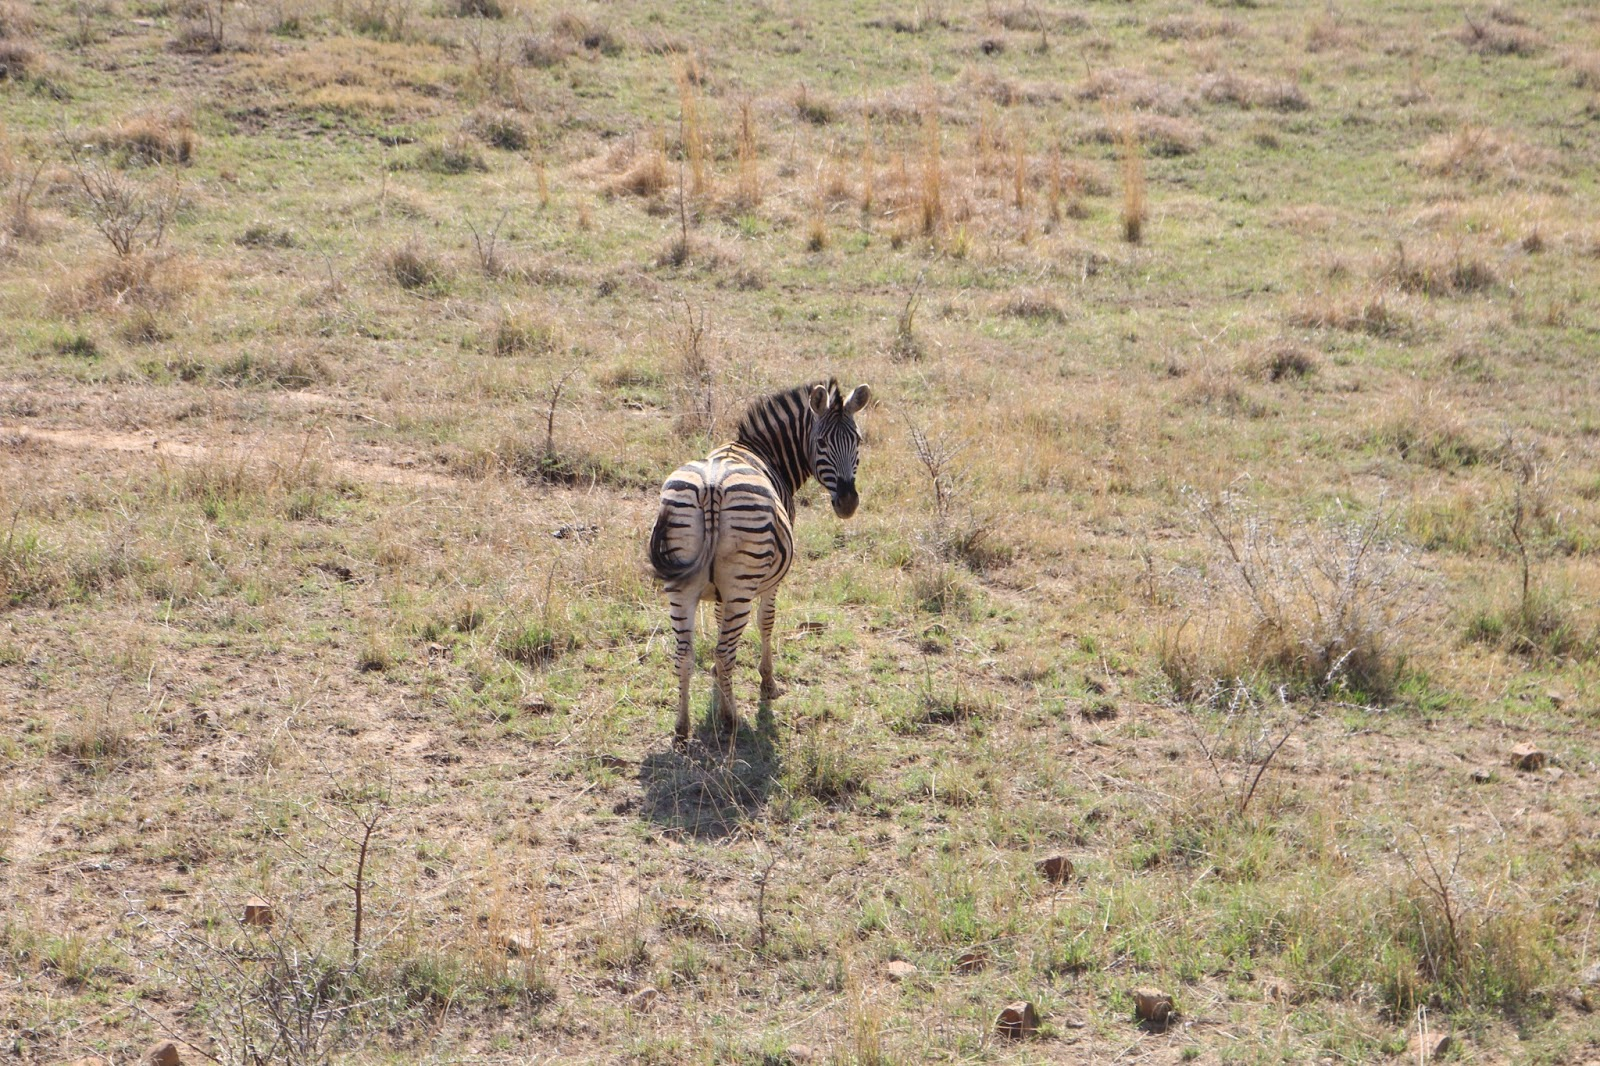 Zebra in Spioenkop Game Reserve, South Africa